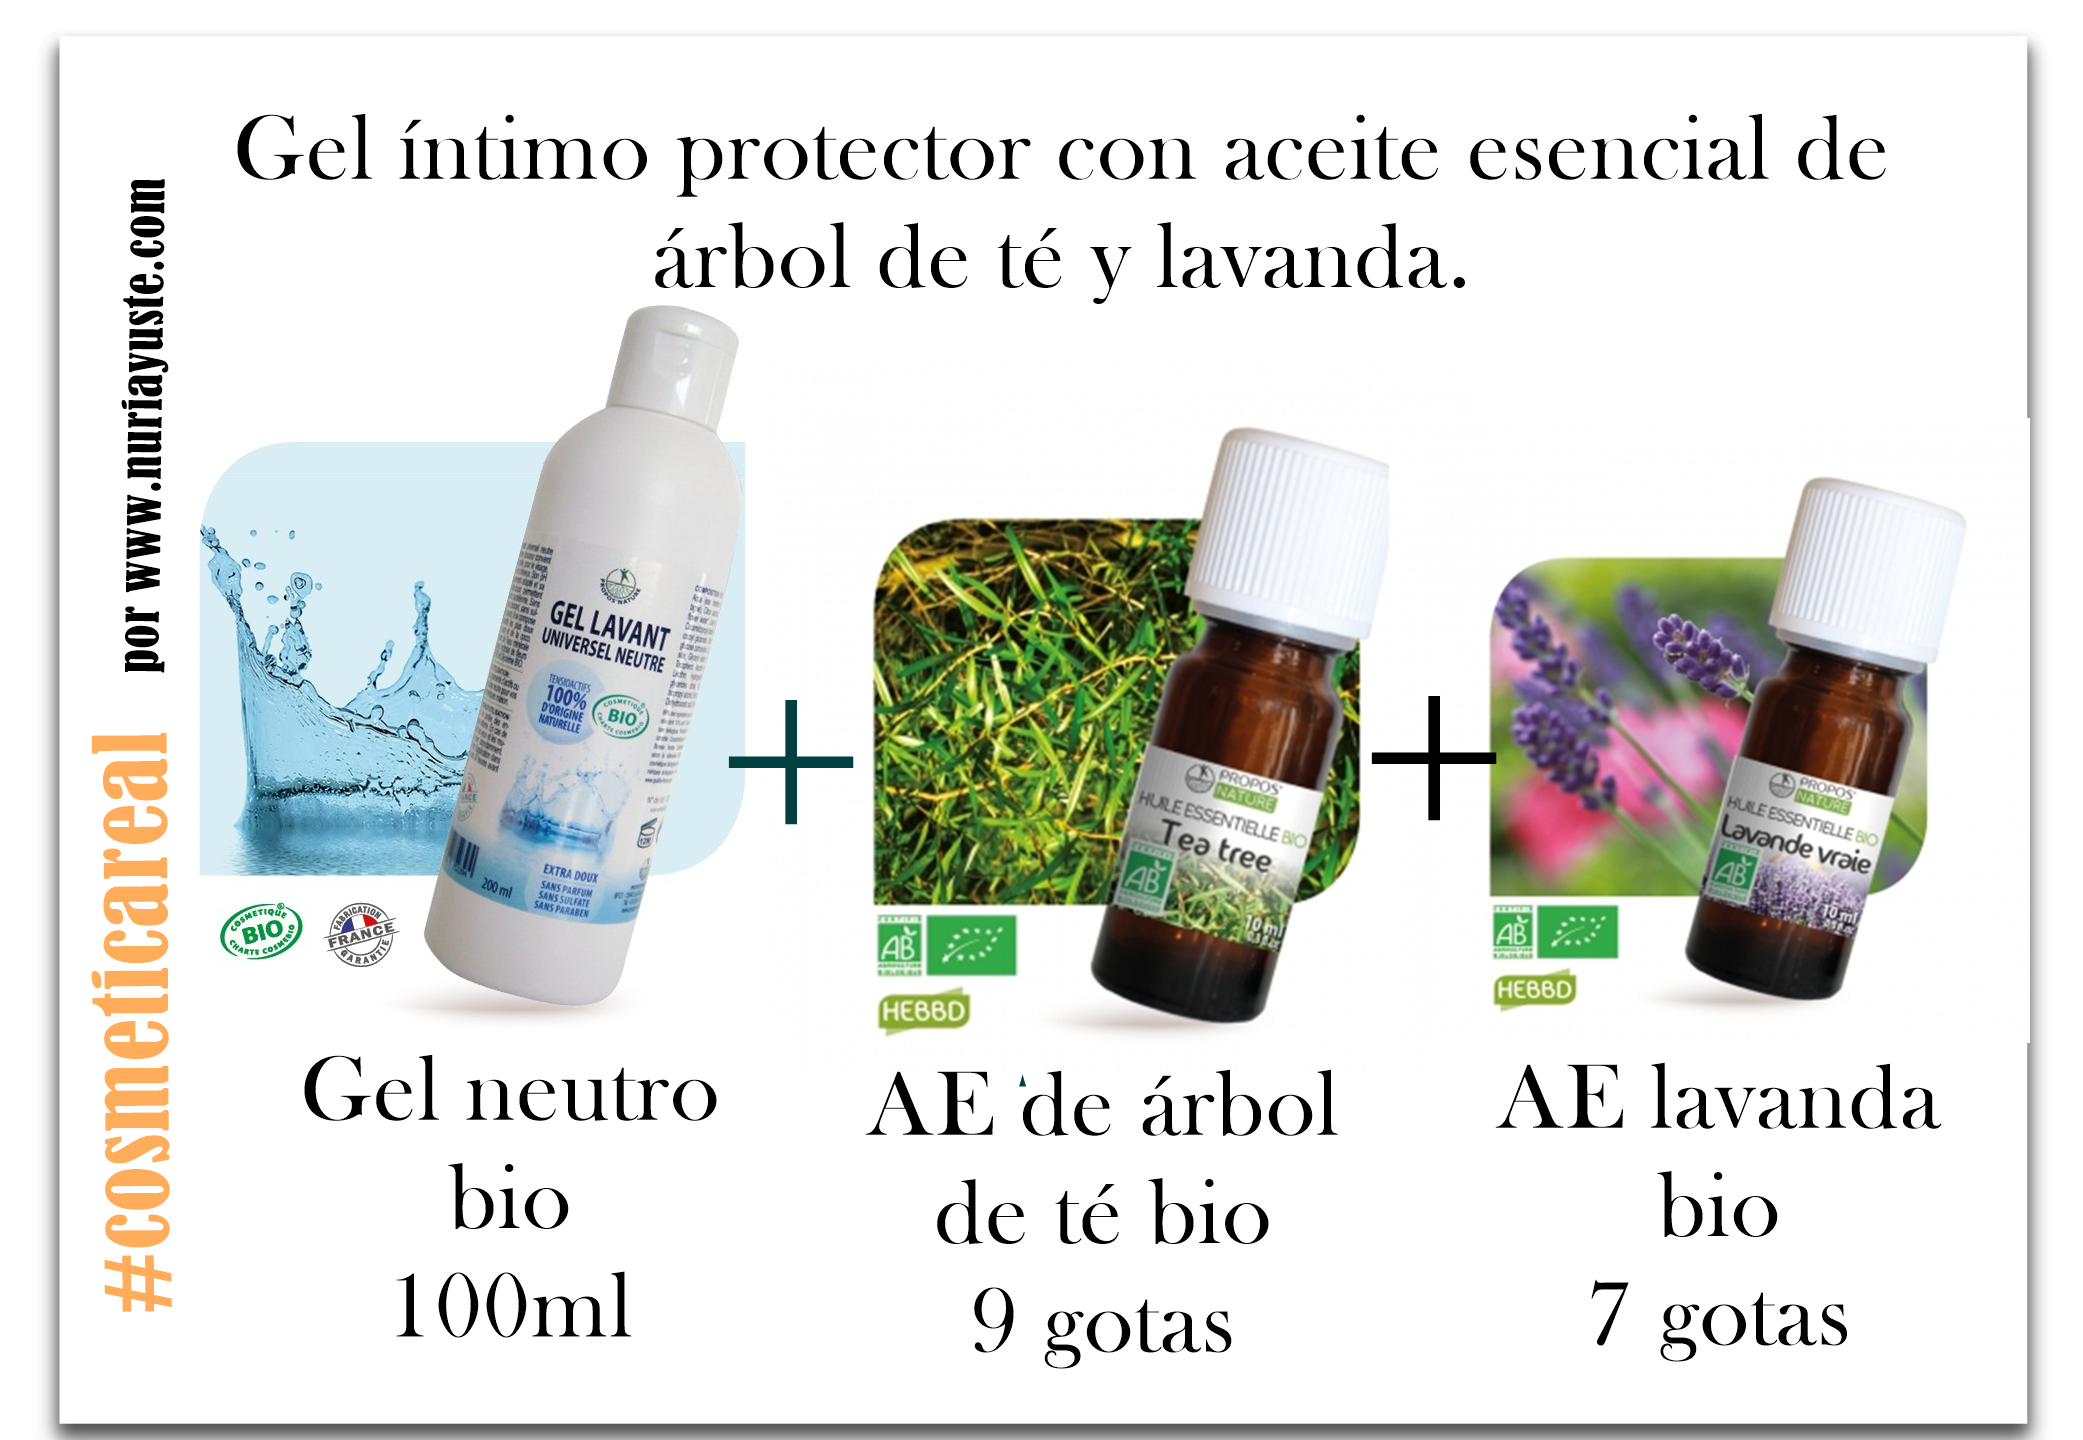 Gel intimo protector